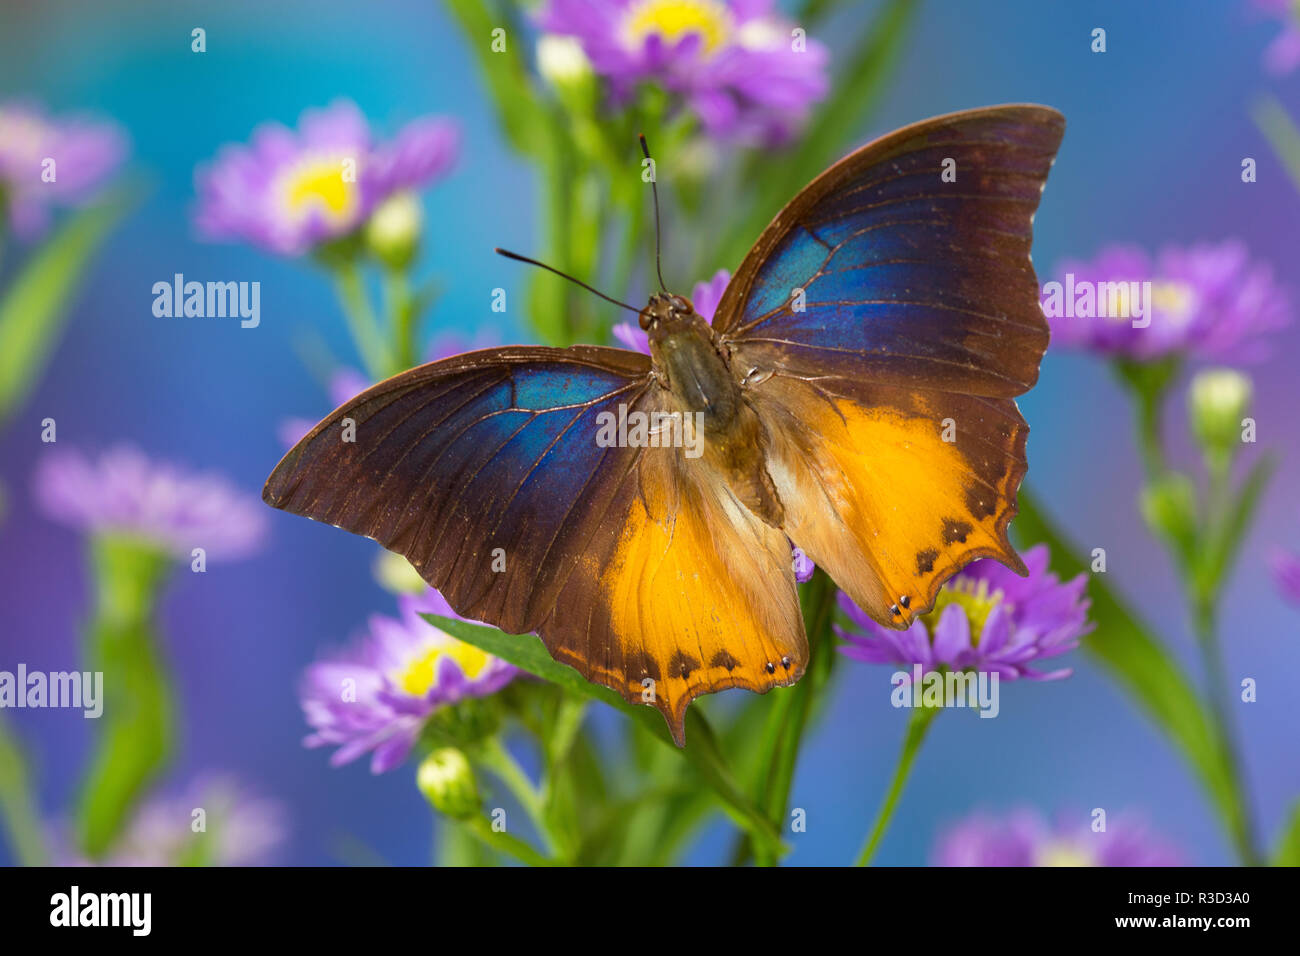 Brush-footed butterfly, Charaxes mars on Asters - Stock Image